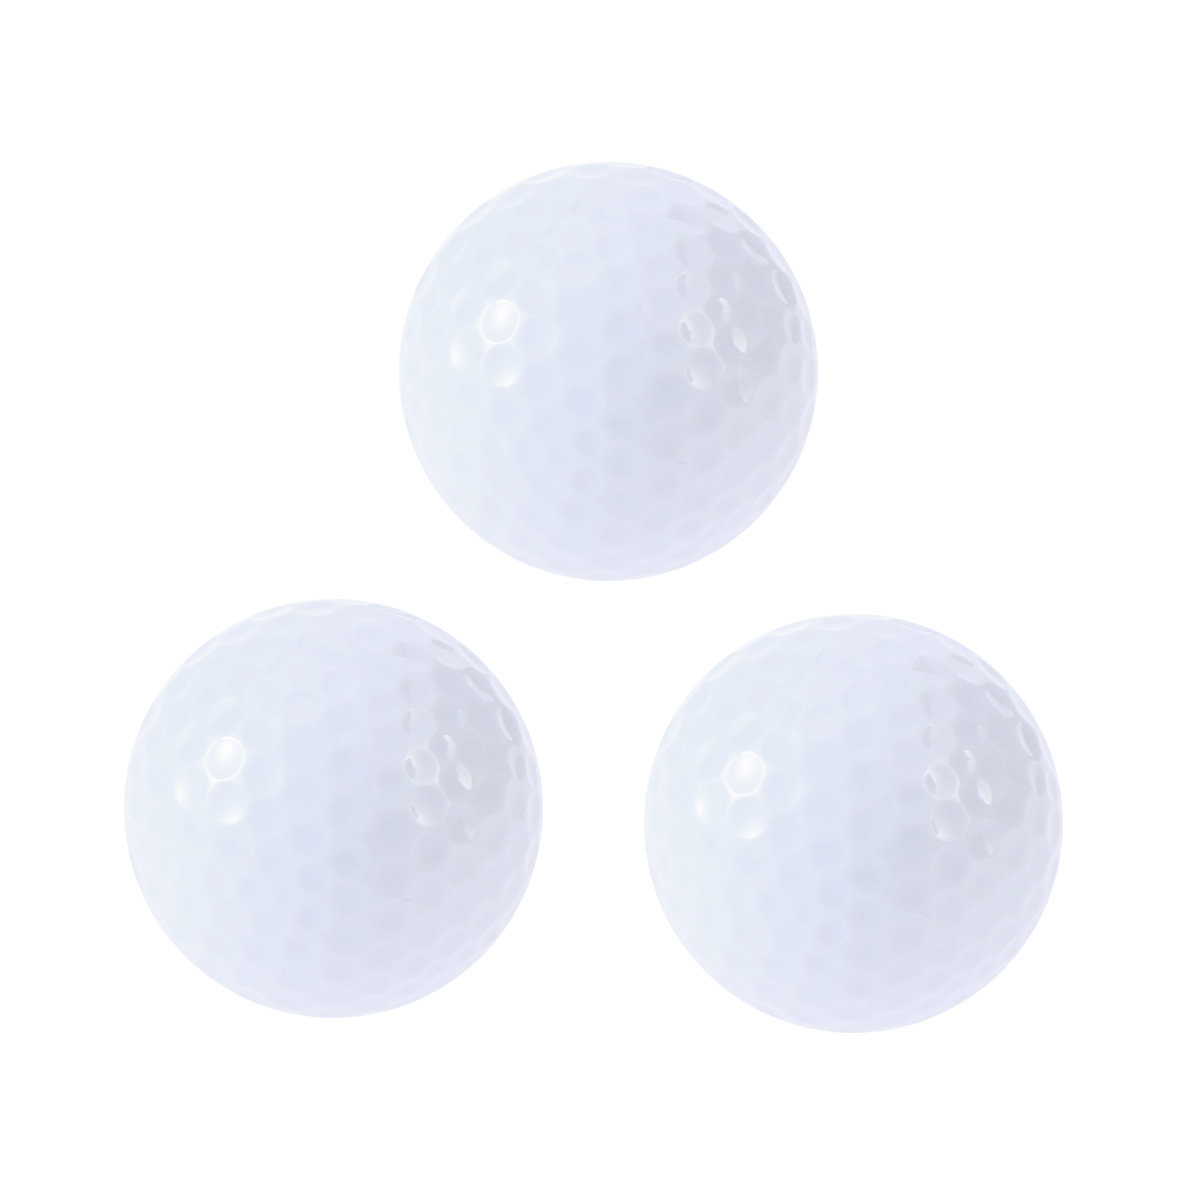 Cheap Bolas de golfe